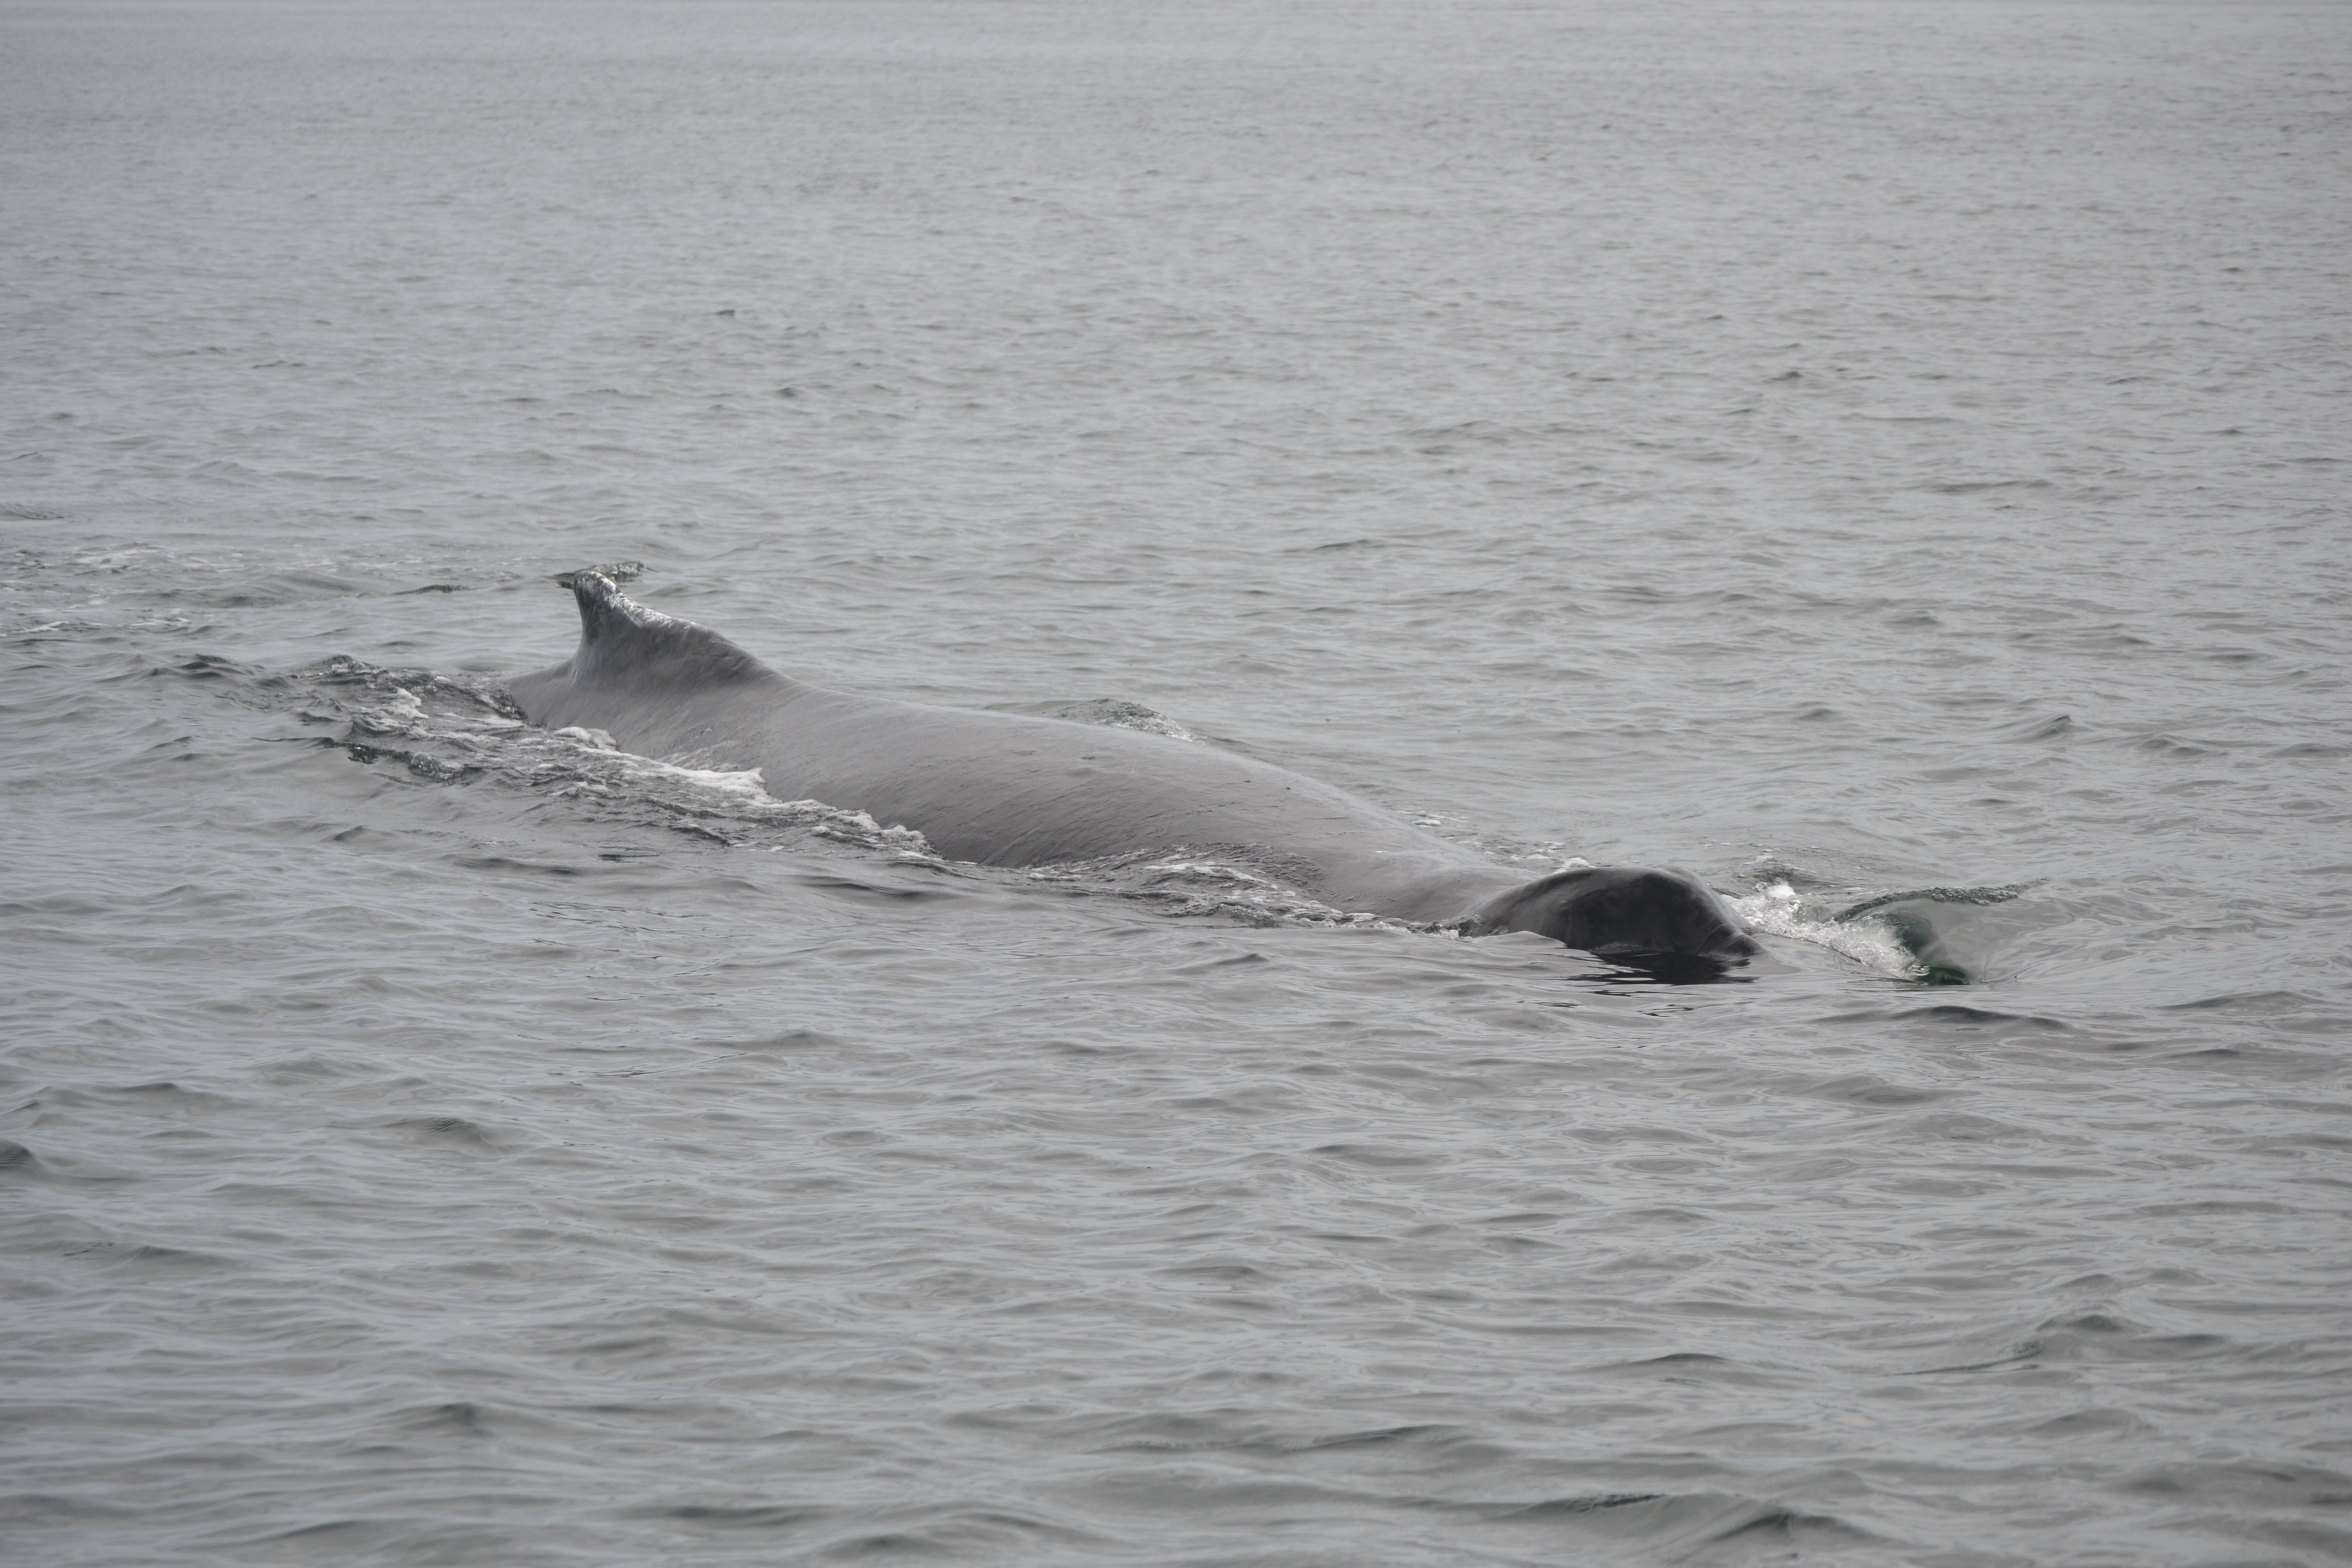 humpback whale at the surface breathing